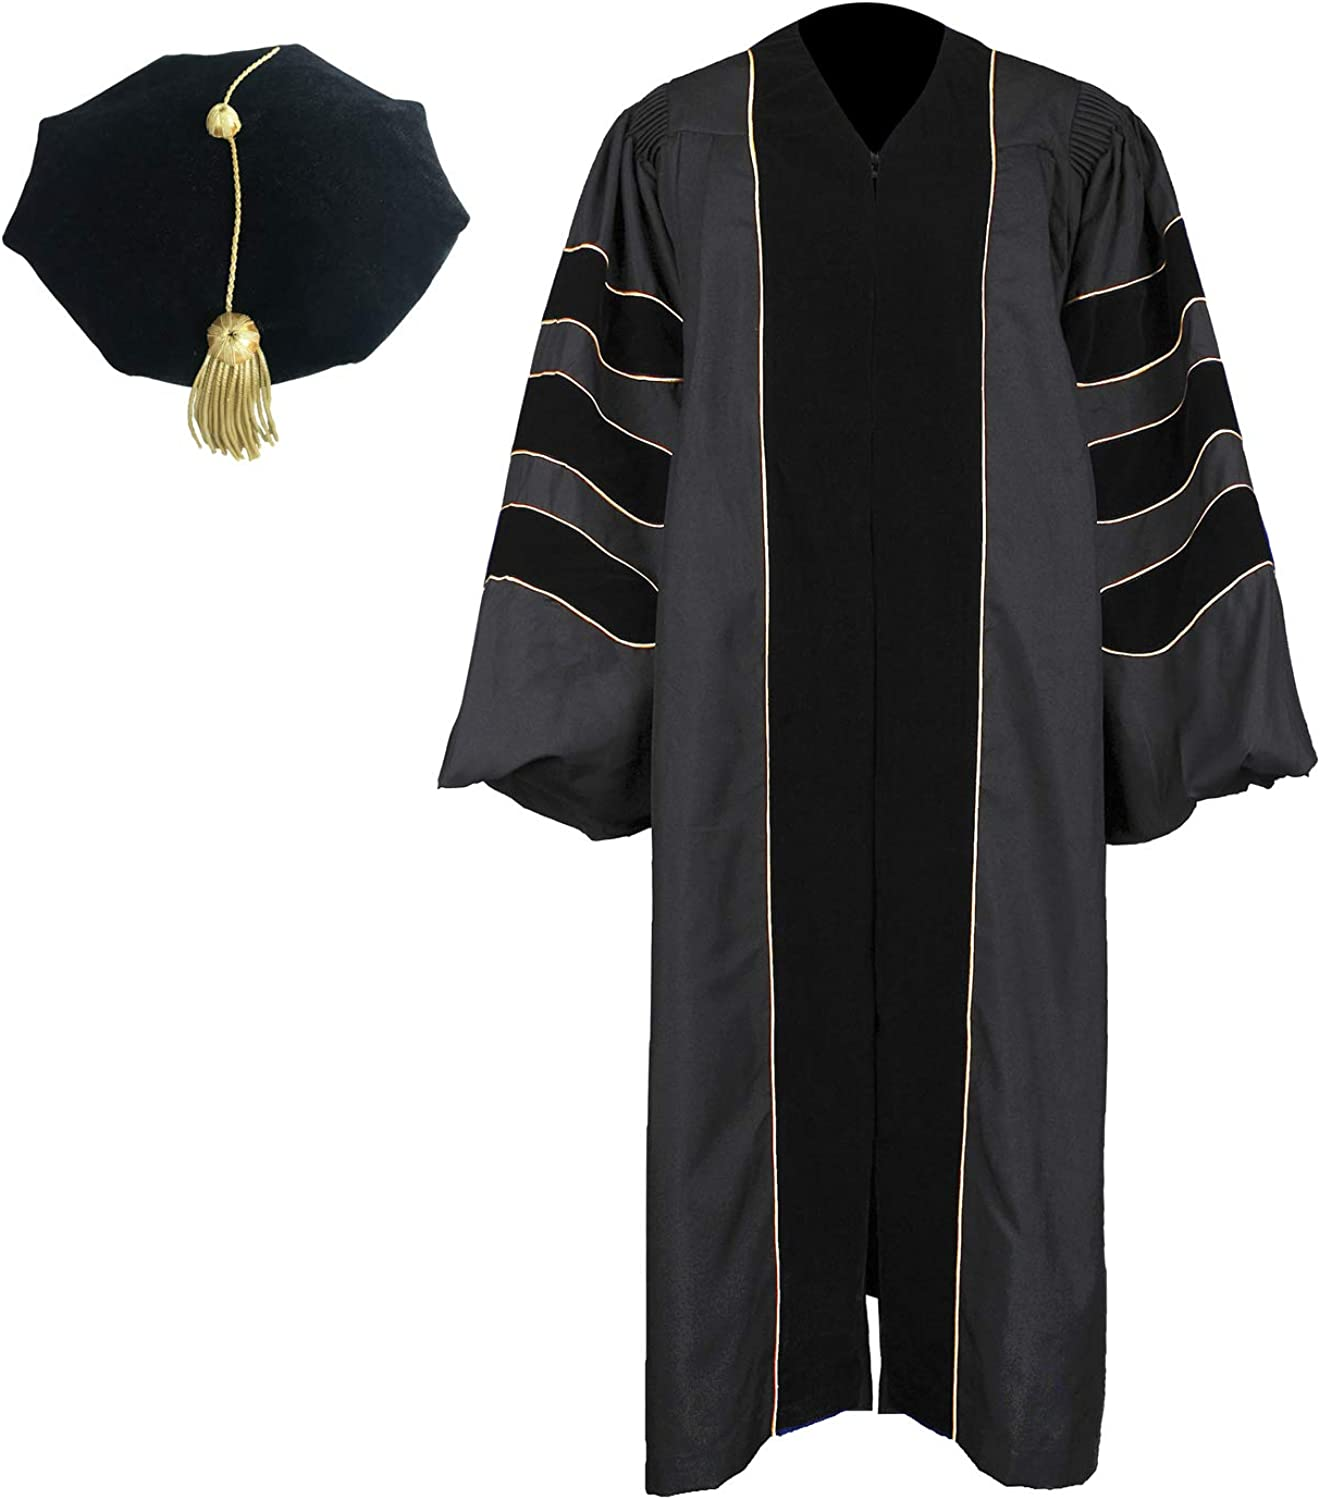 Newrara Unisex Deluxe Doctoral New mail order Cheap mail order shopping Gown Hood Graduation an